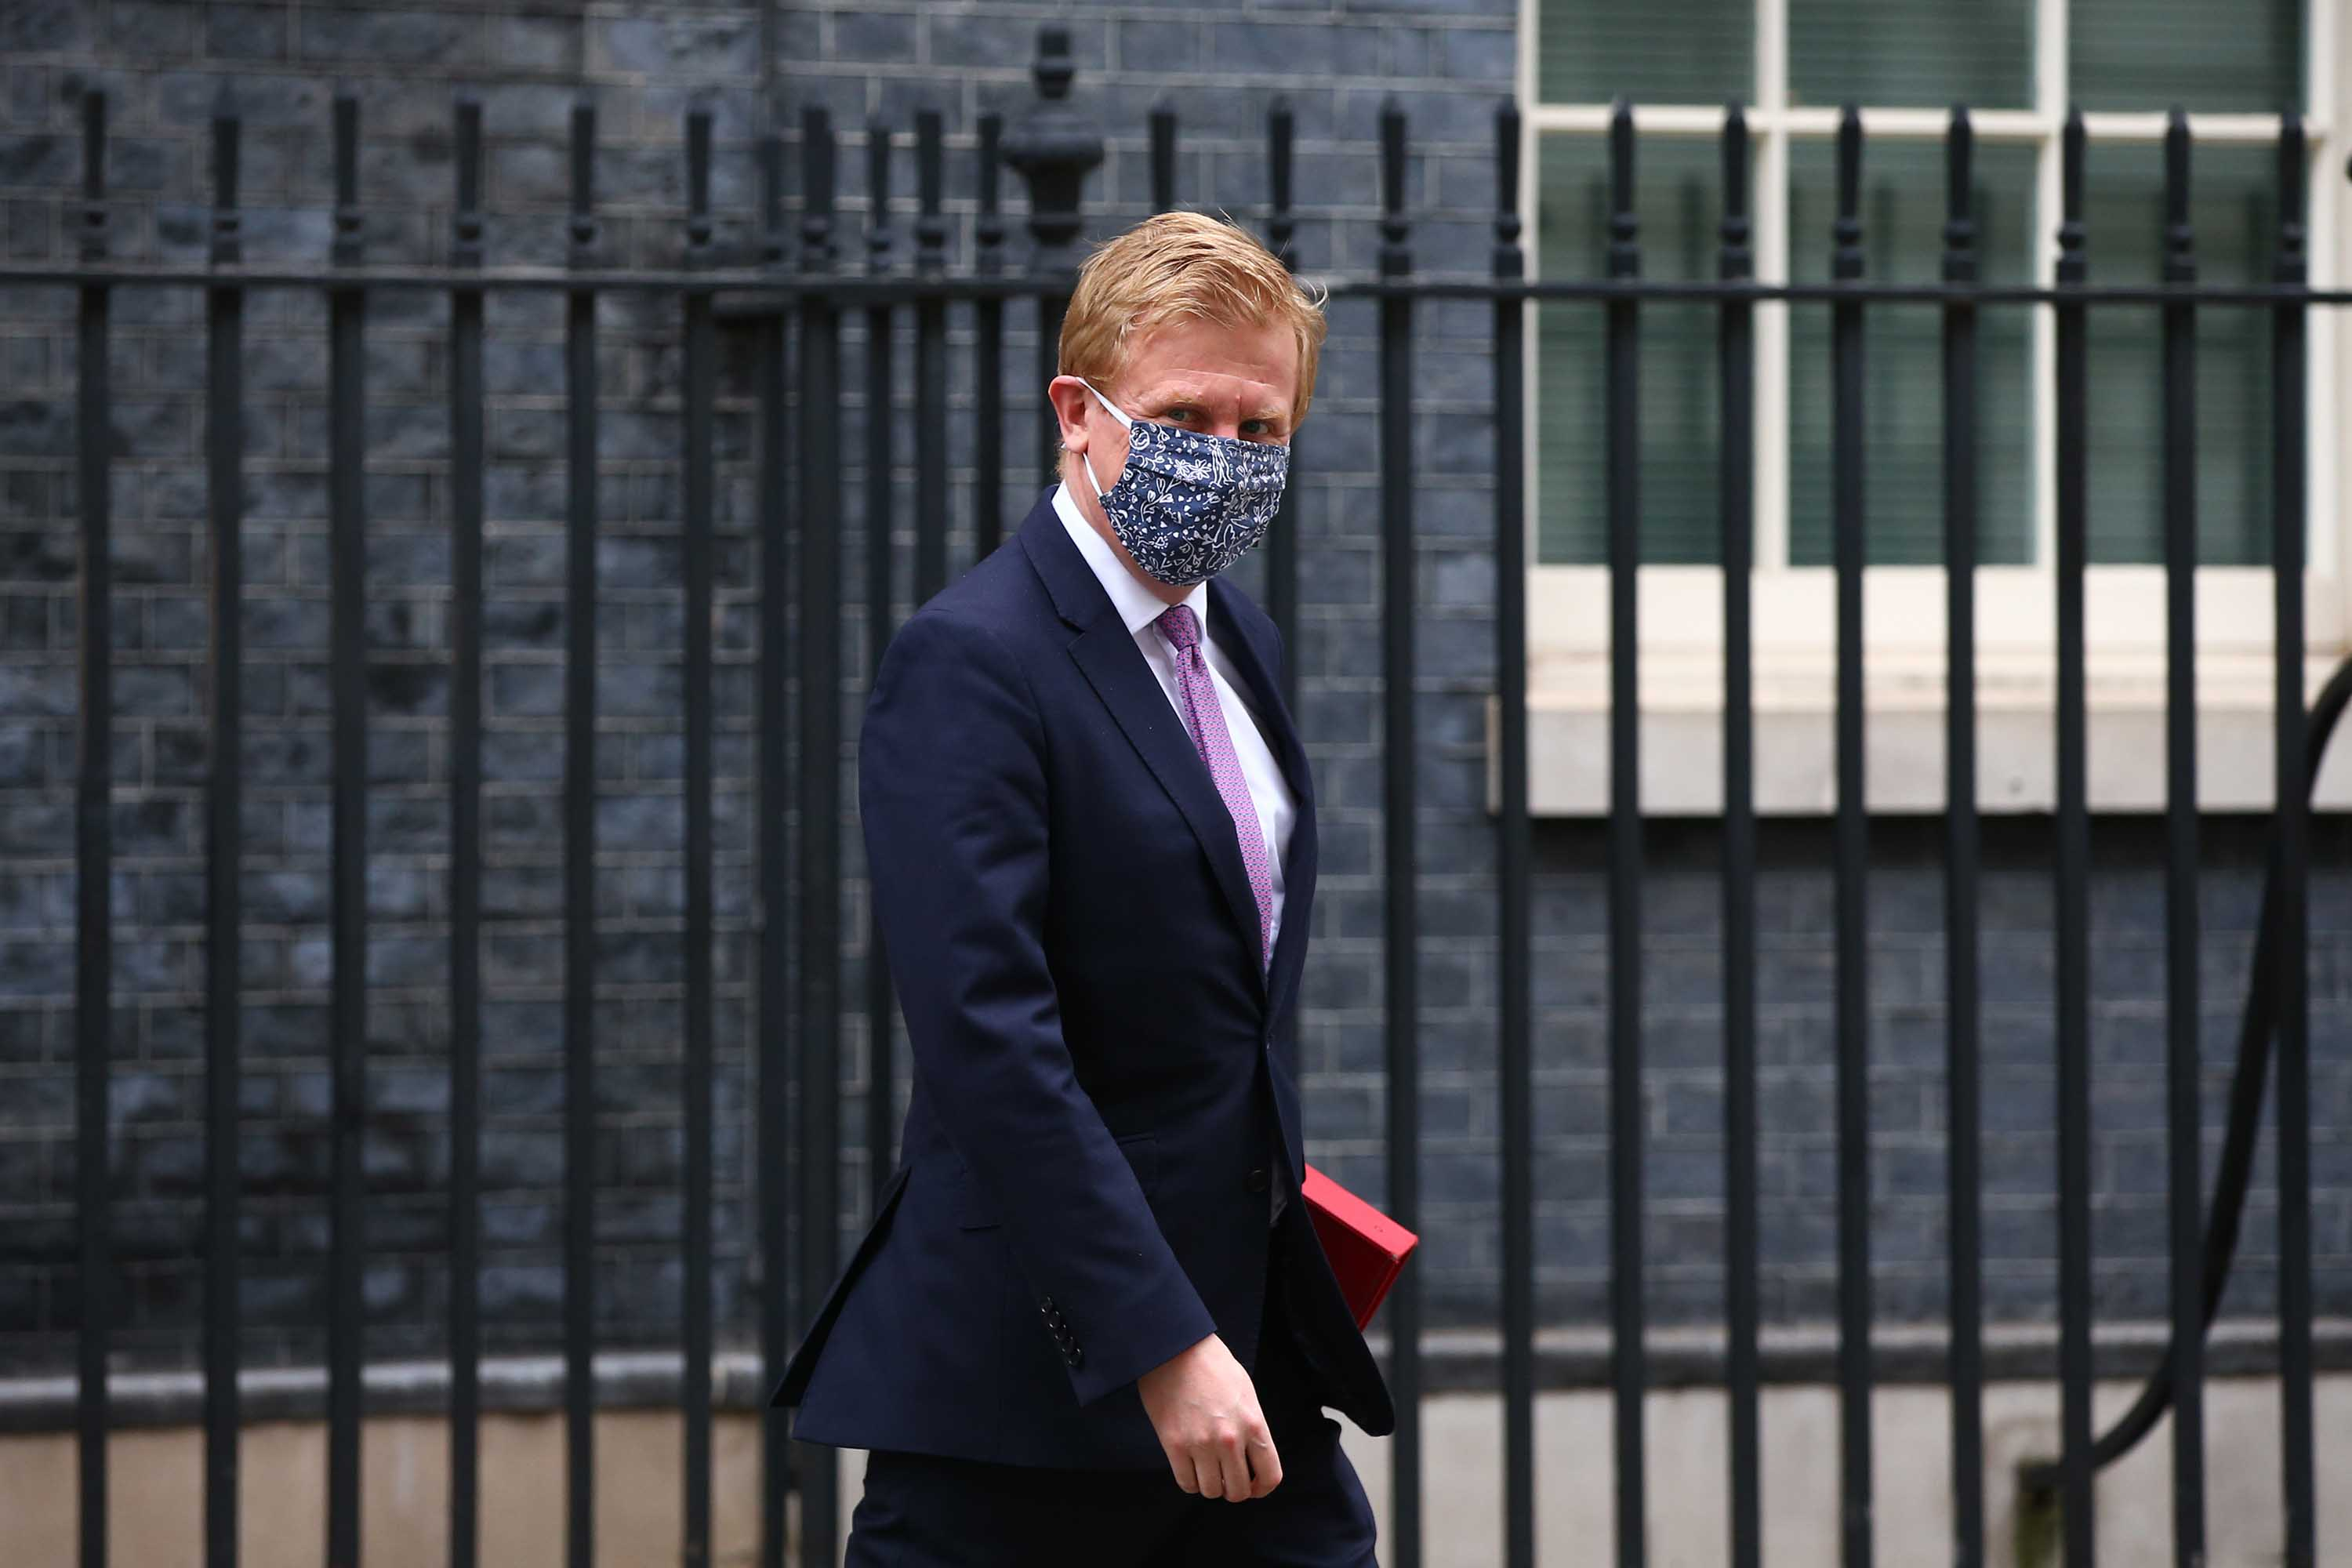 Culture Secretary Oliver Dowden leaves 10 Downing Street on March 17, in London, England.